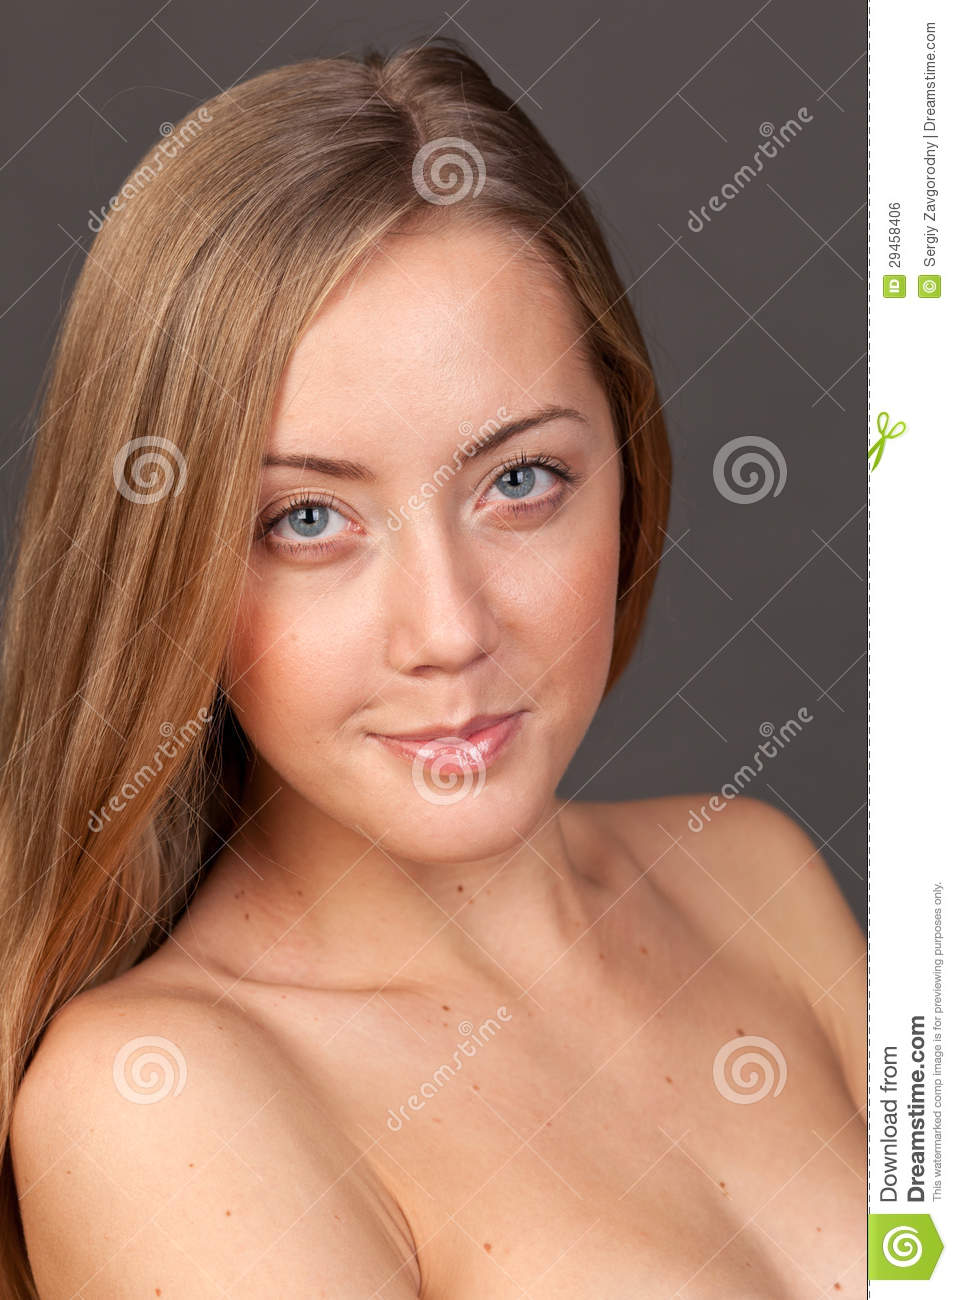 close up face portrait of young woman royalty free stock image image 29458406 cleaning supplies clipart picture cleaning supplies clipart image